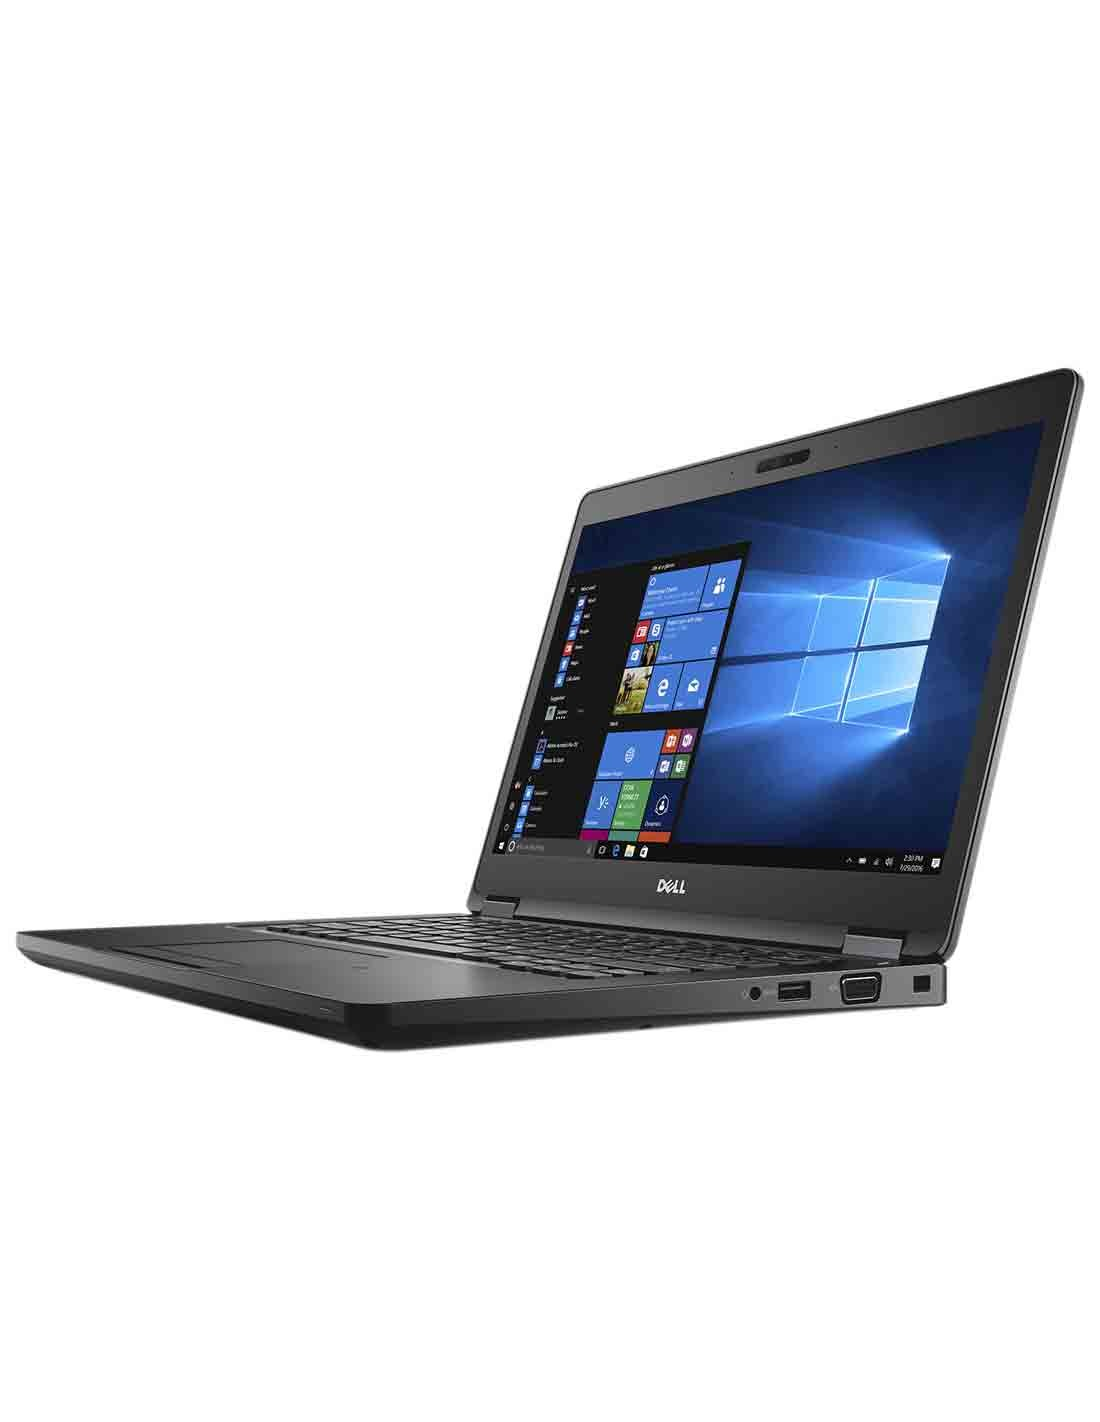 Dell Latitude 5480 Laptop i7 images and photos in Dubai online store